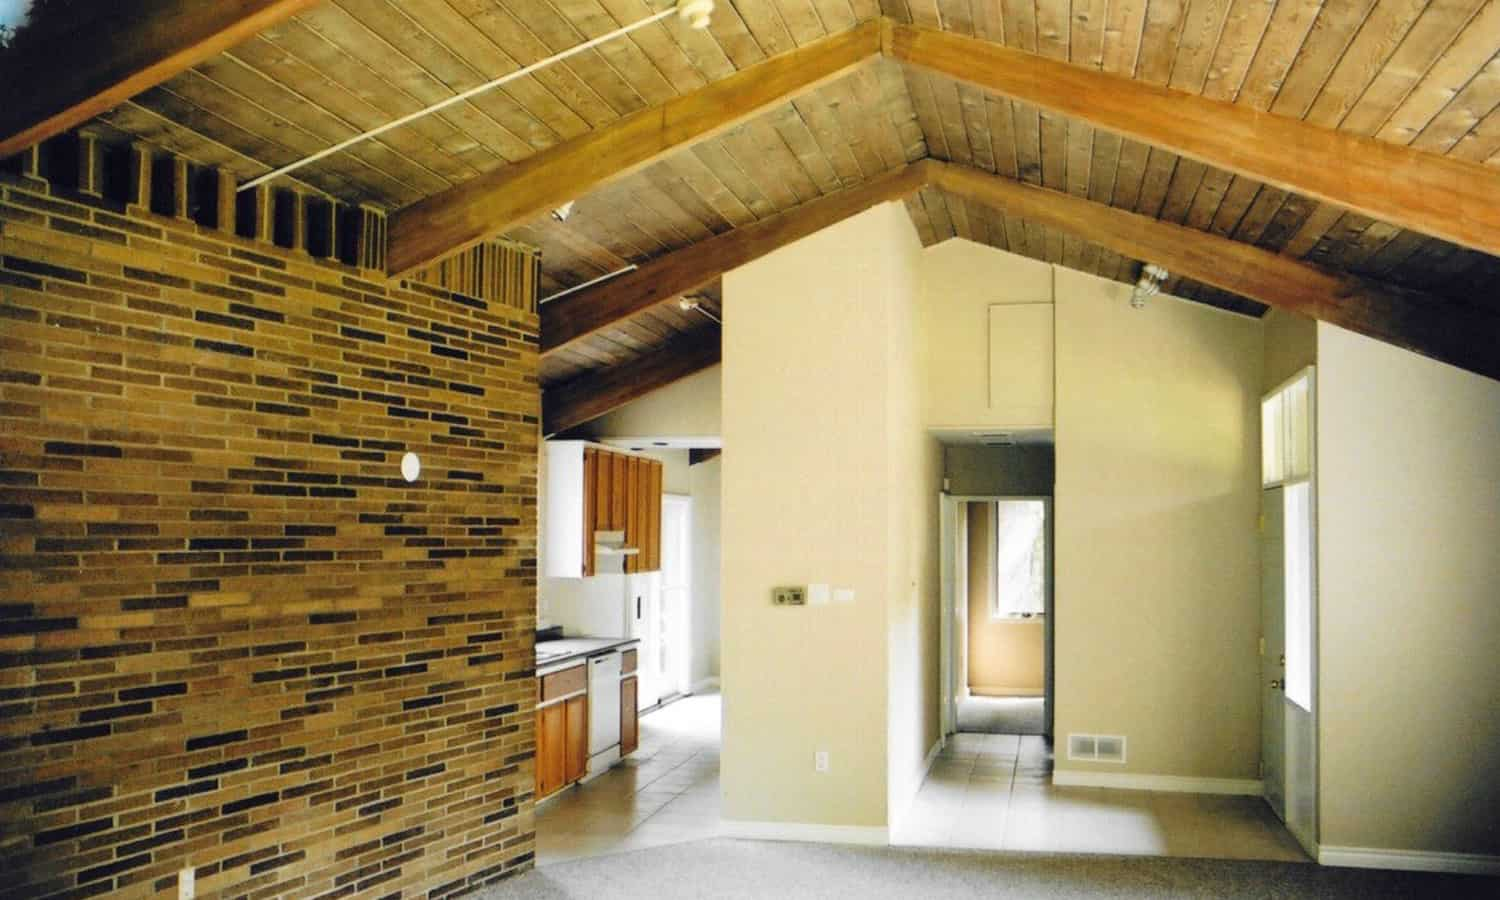 Living space with visible three-pinned wooden arch structure